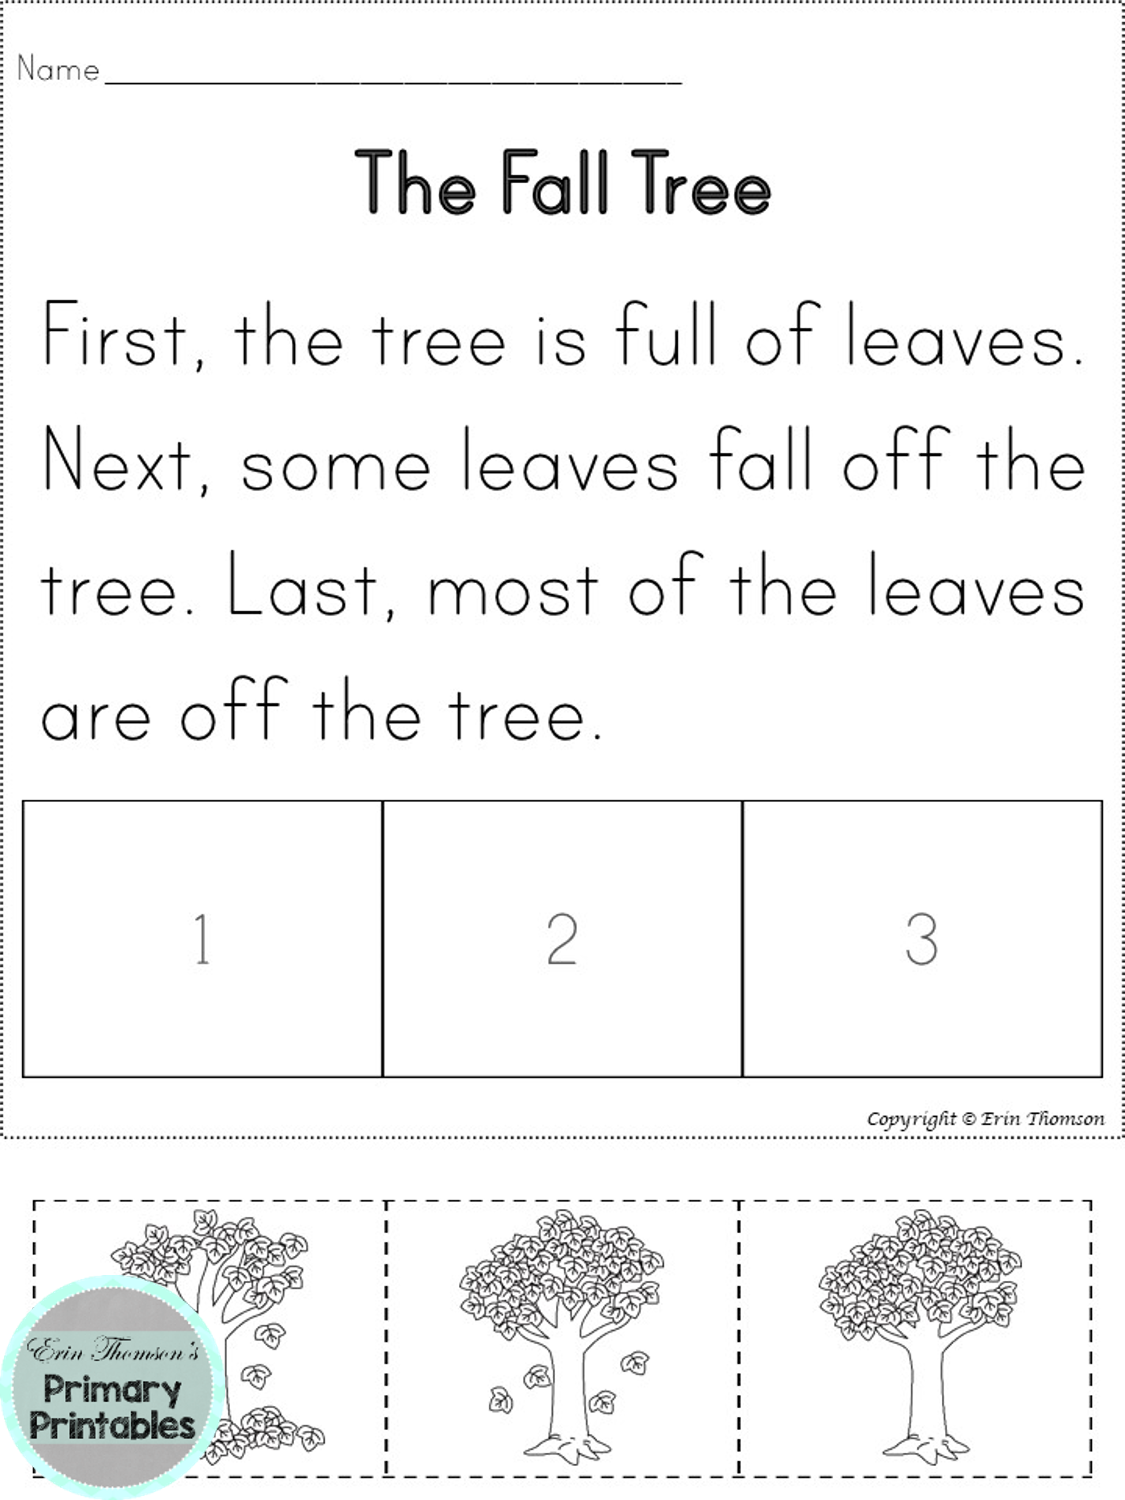 hight resolution of 3 part Sequencing Story ~ The Fall Tree (First